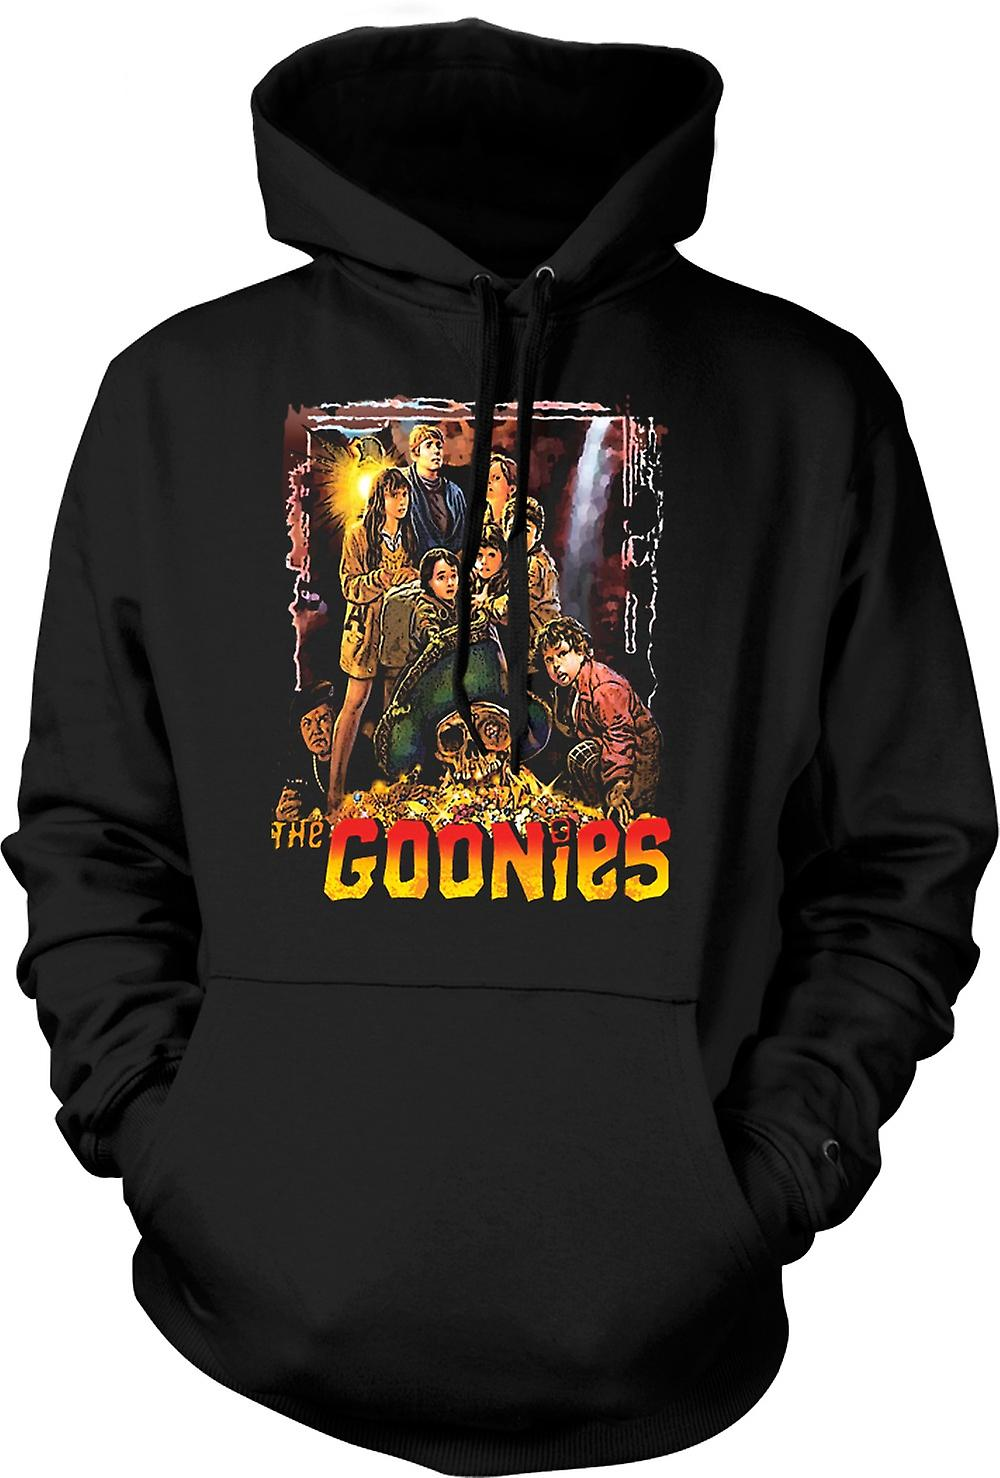 Kids Hoodie - The Goonies Treasure - Movie